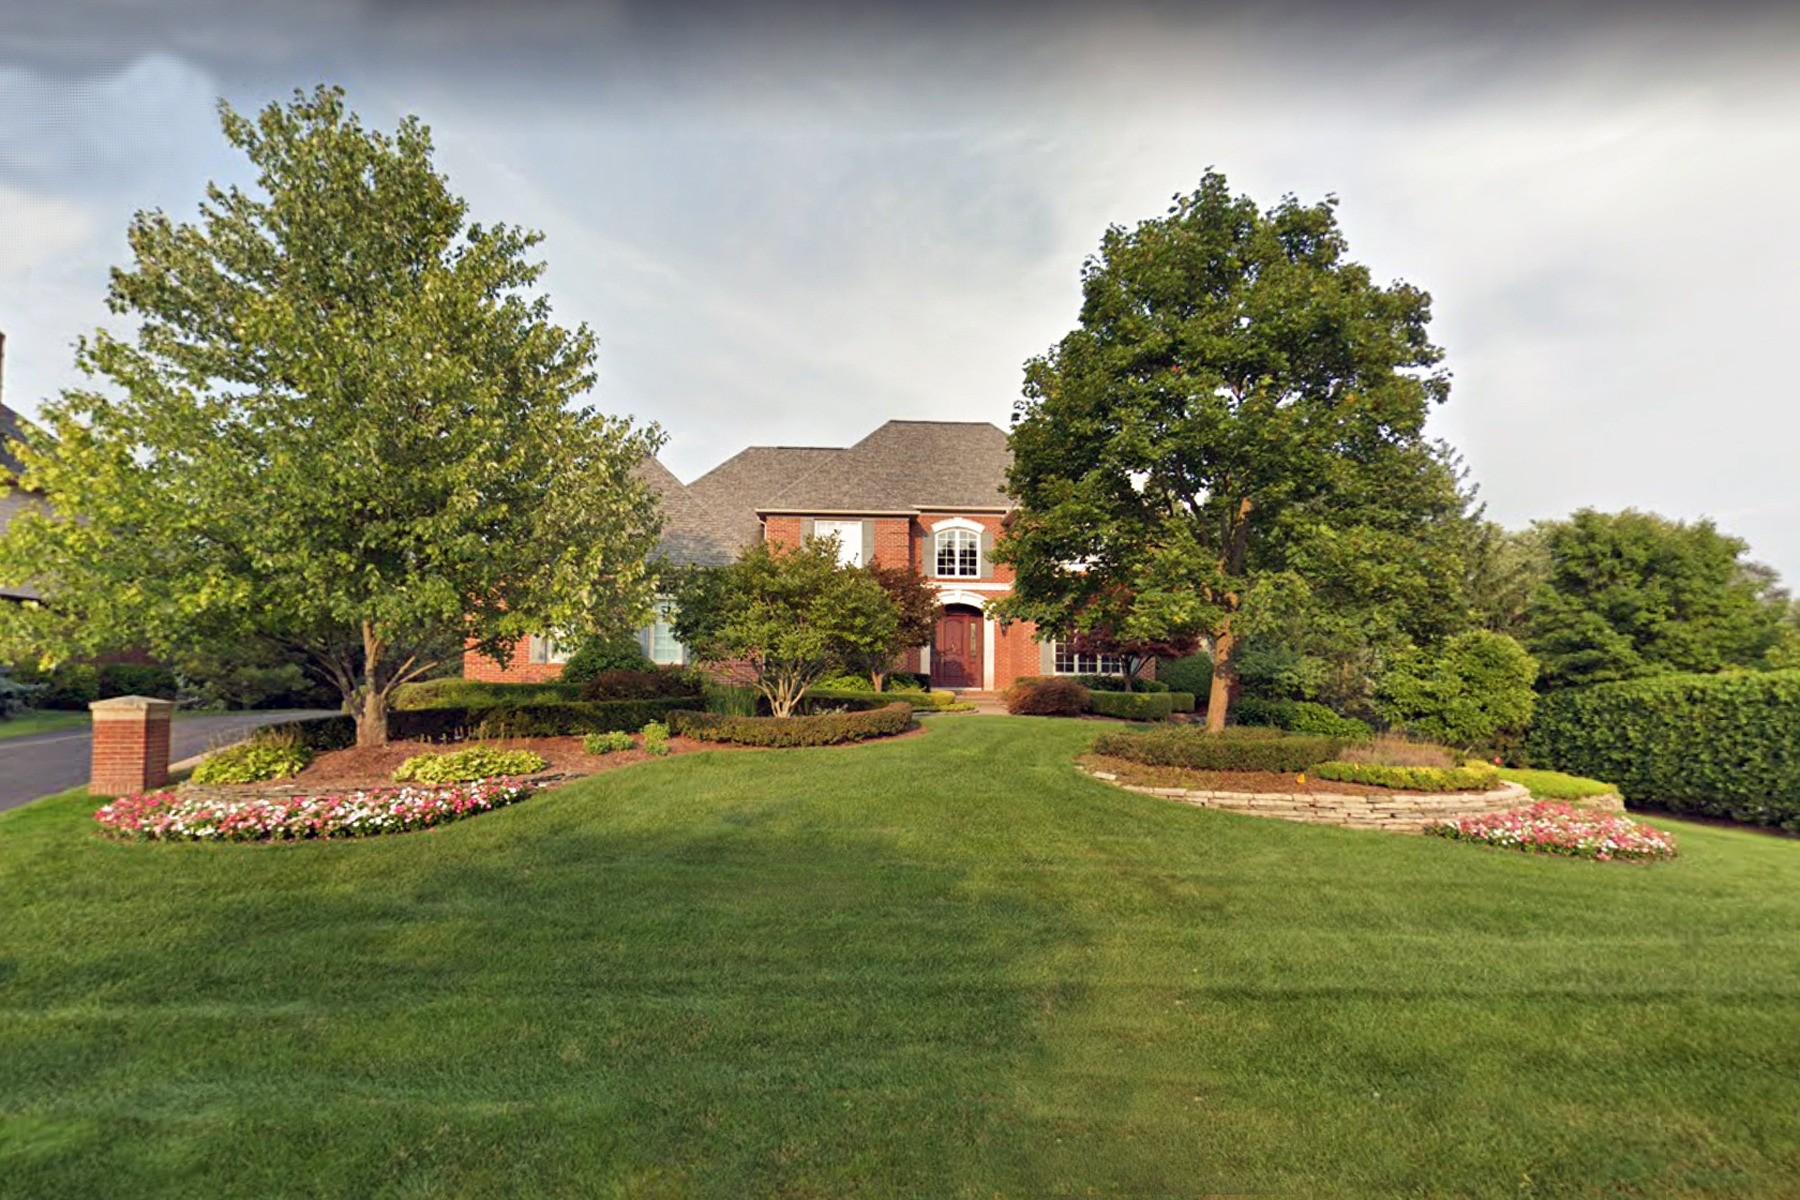 Single Family Homes for Sale at Bloomfield Hills 2551 Ginger Court Bloomfield Hills, Michigan 48304 United States